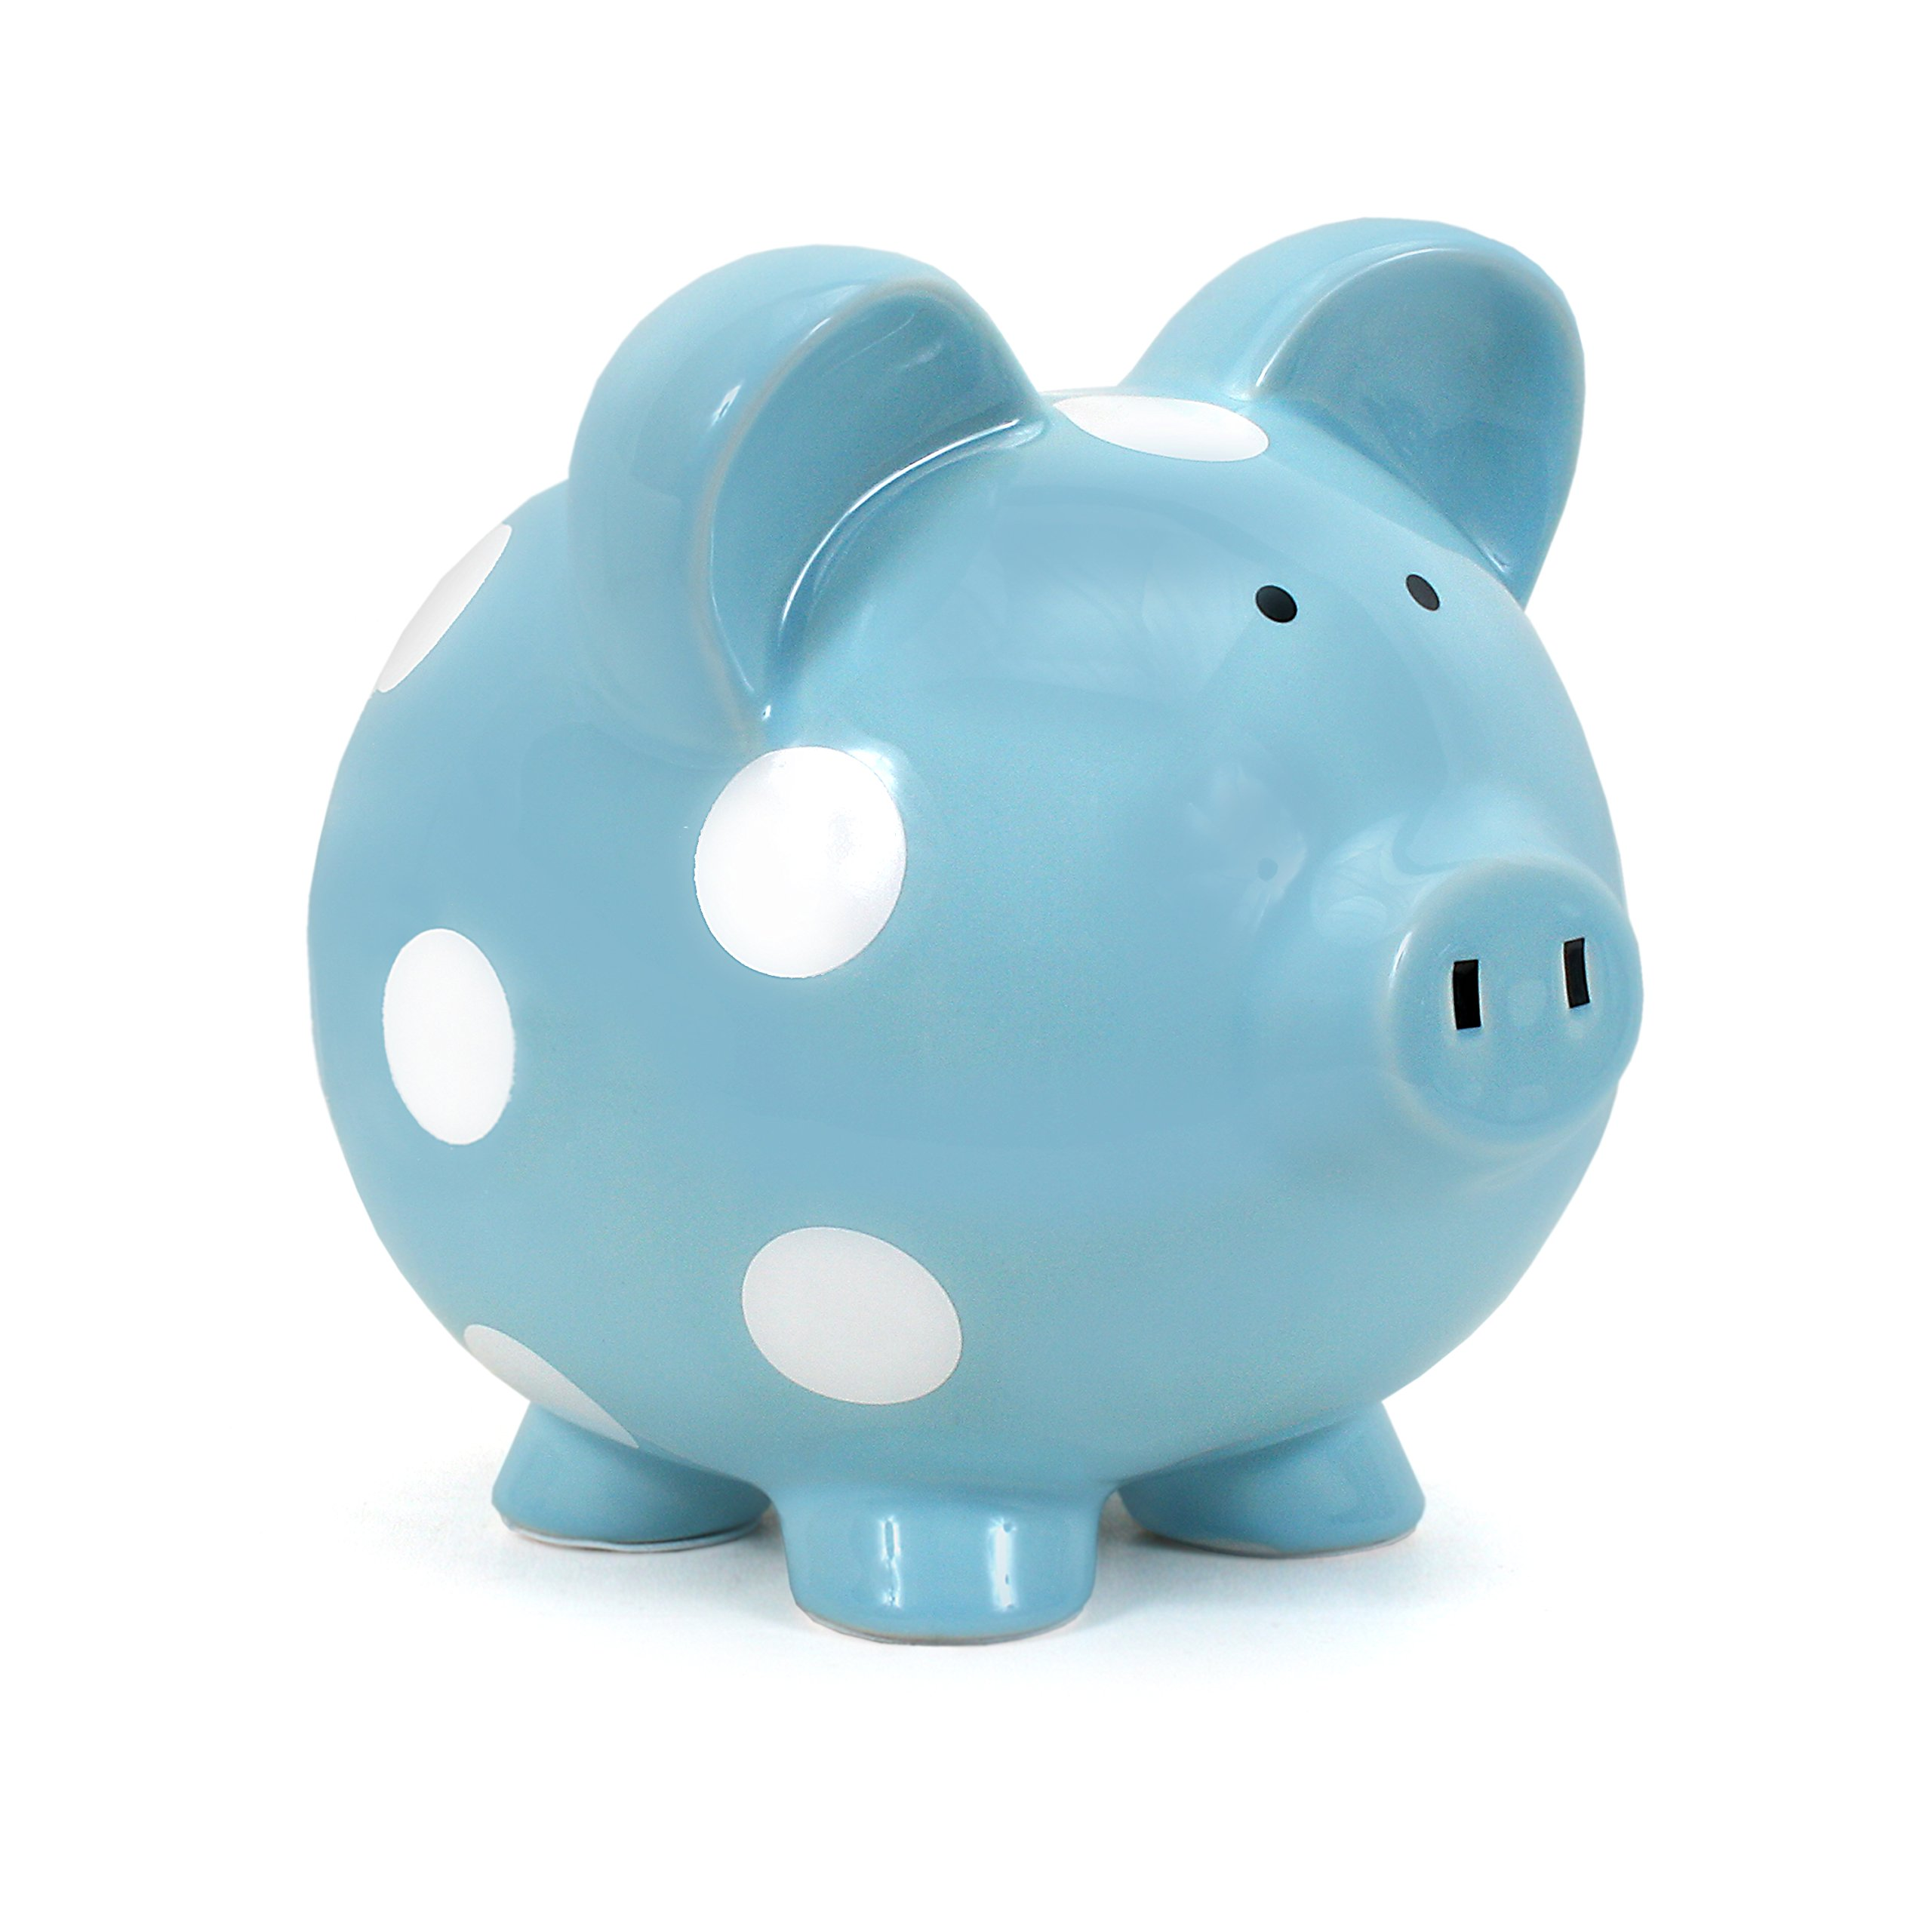 Child to Cherish Ceramic Polka Dot Piggy Bank for Boys, Light Blue